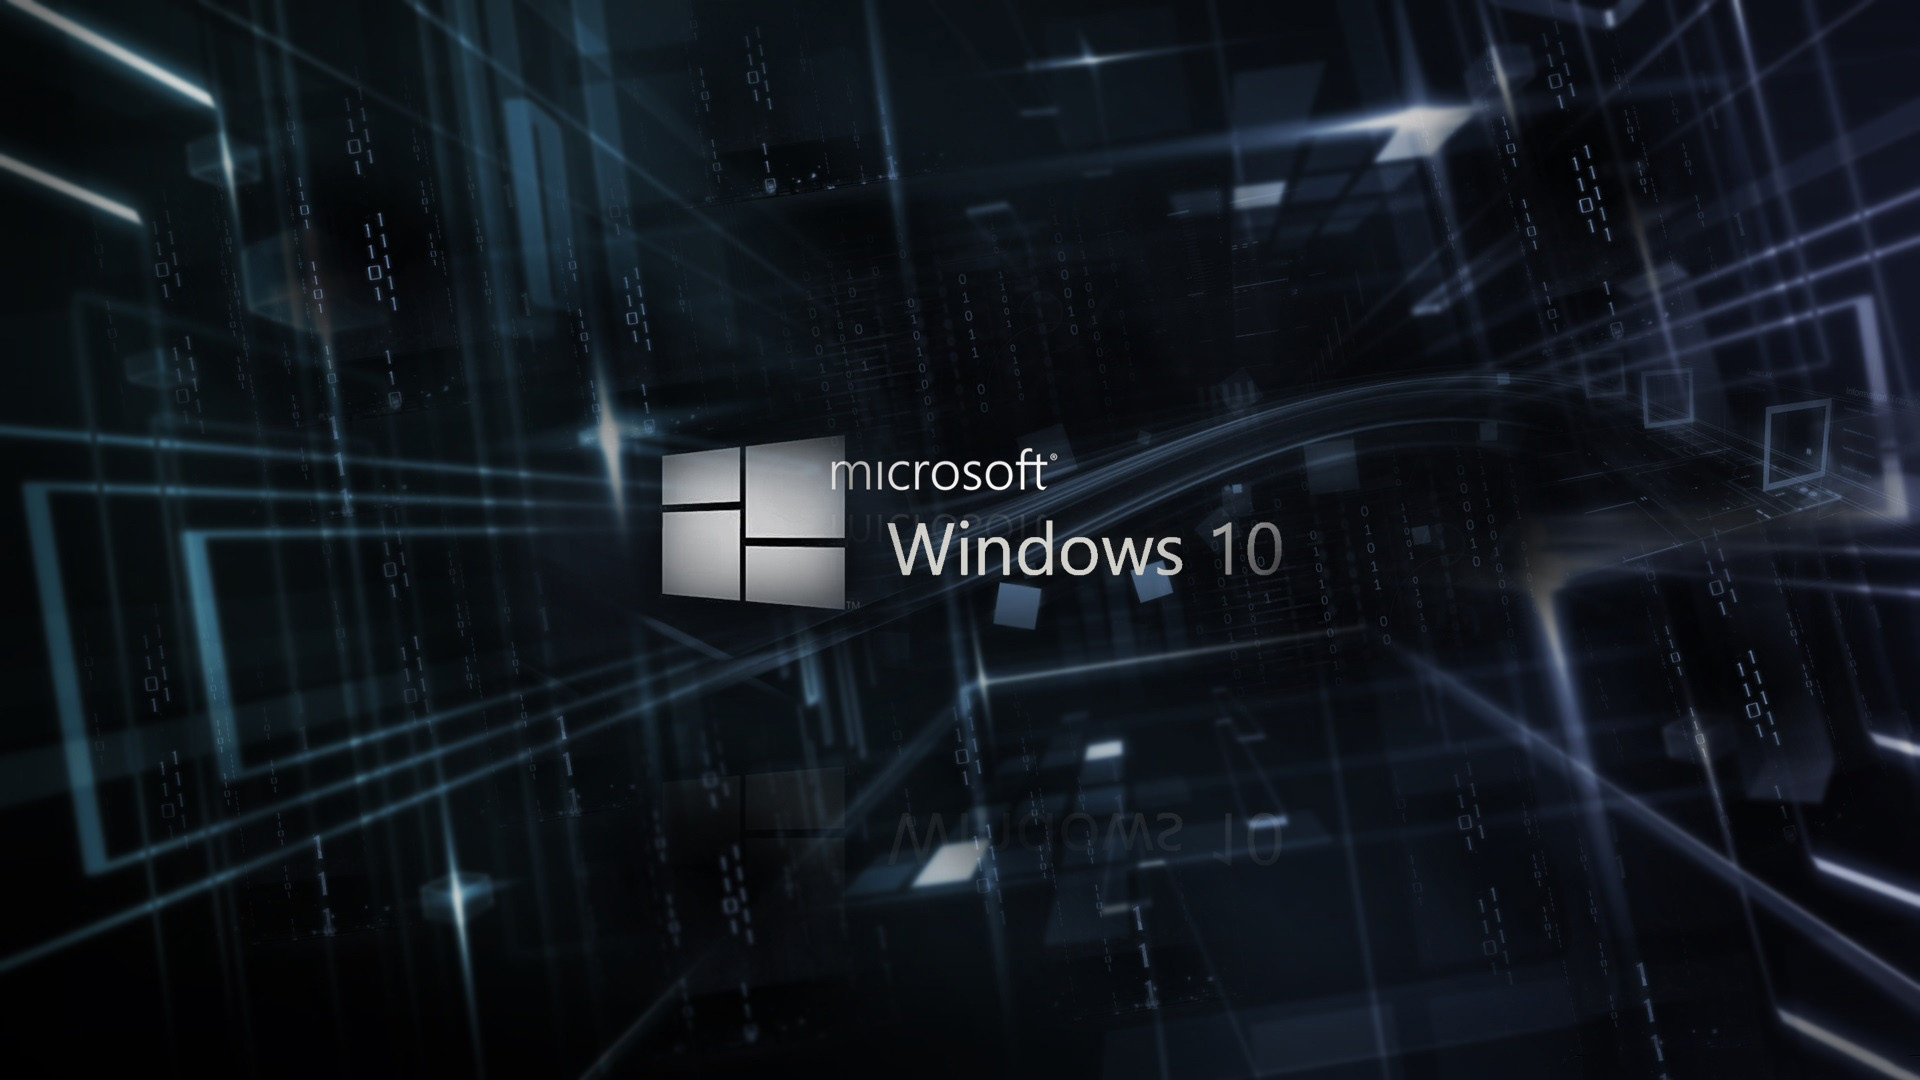 Live Wallpaper HD 9 for Windows 10 is free HD wallpaper. This .